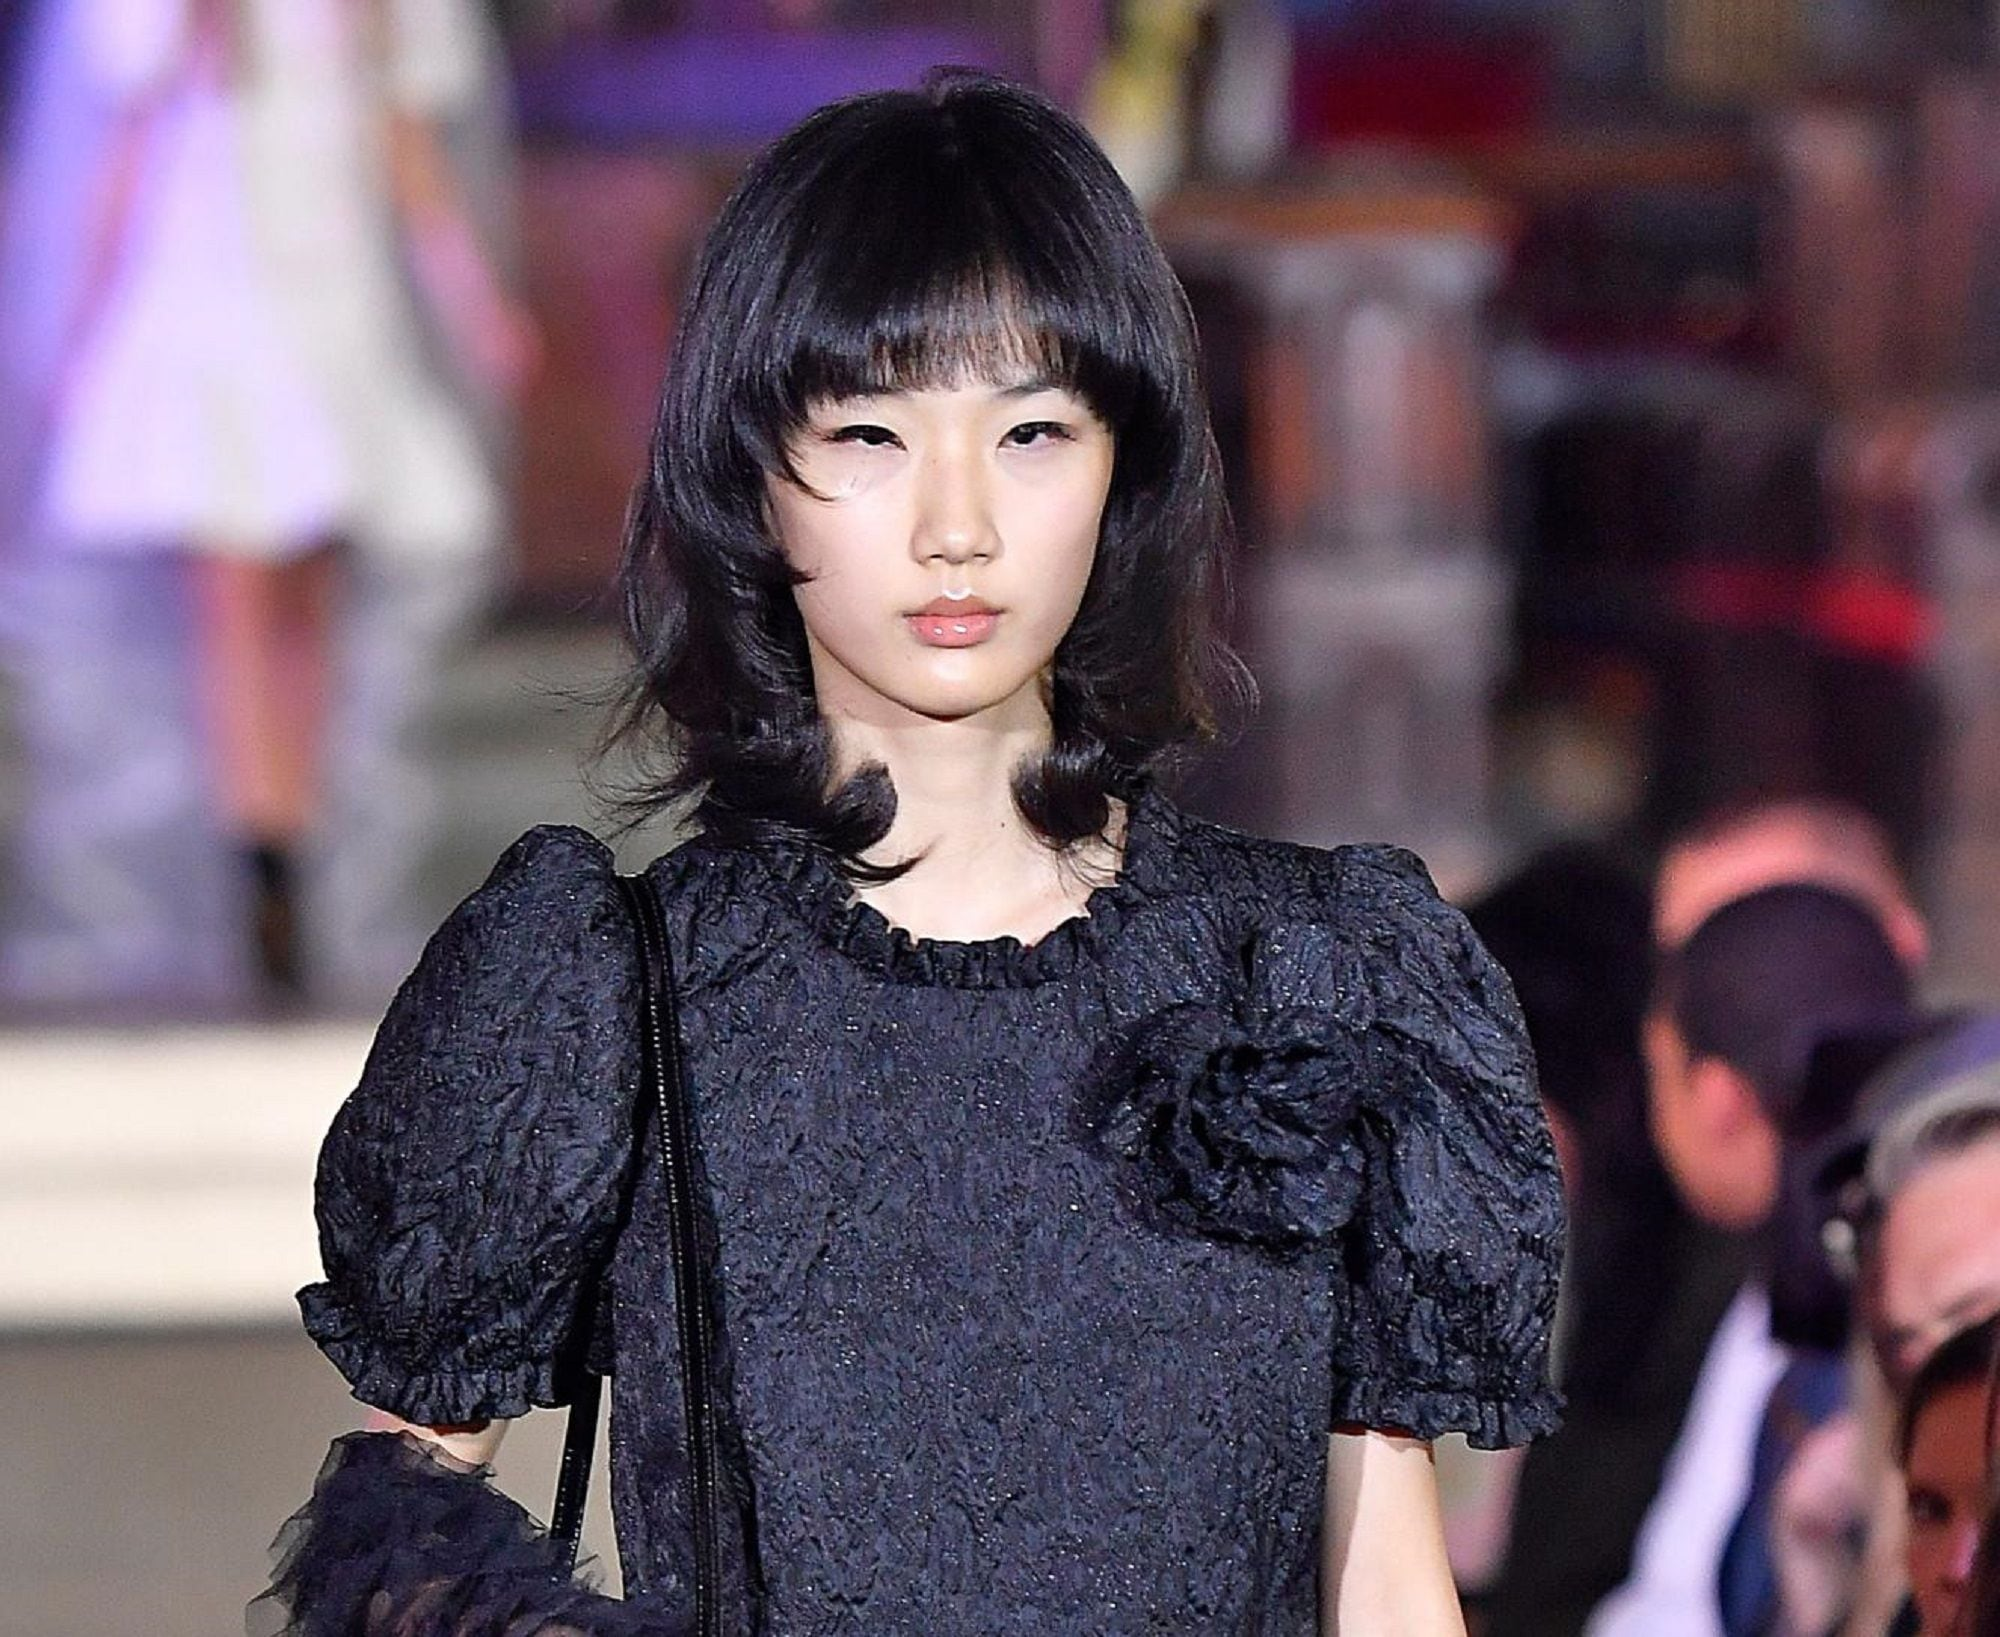 Goth hairstyles: Runway shot of Asian woman with black hair with bangs styled in goth hairstyle and wearing a dark gray dress